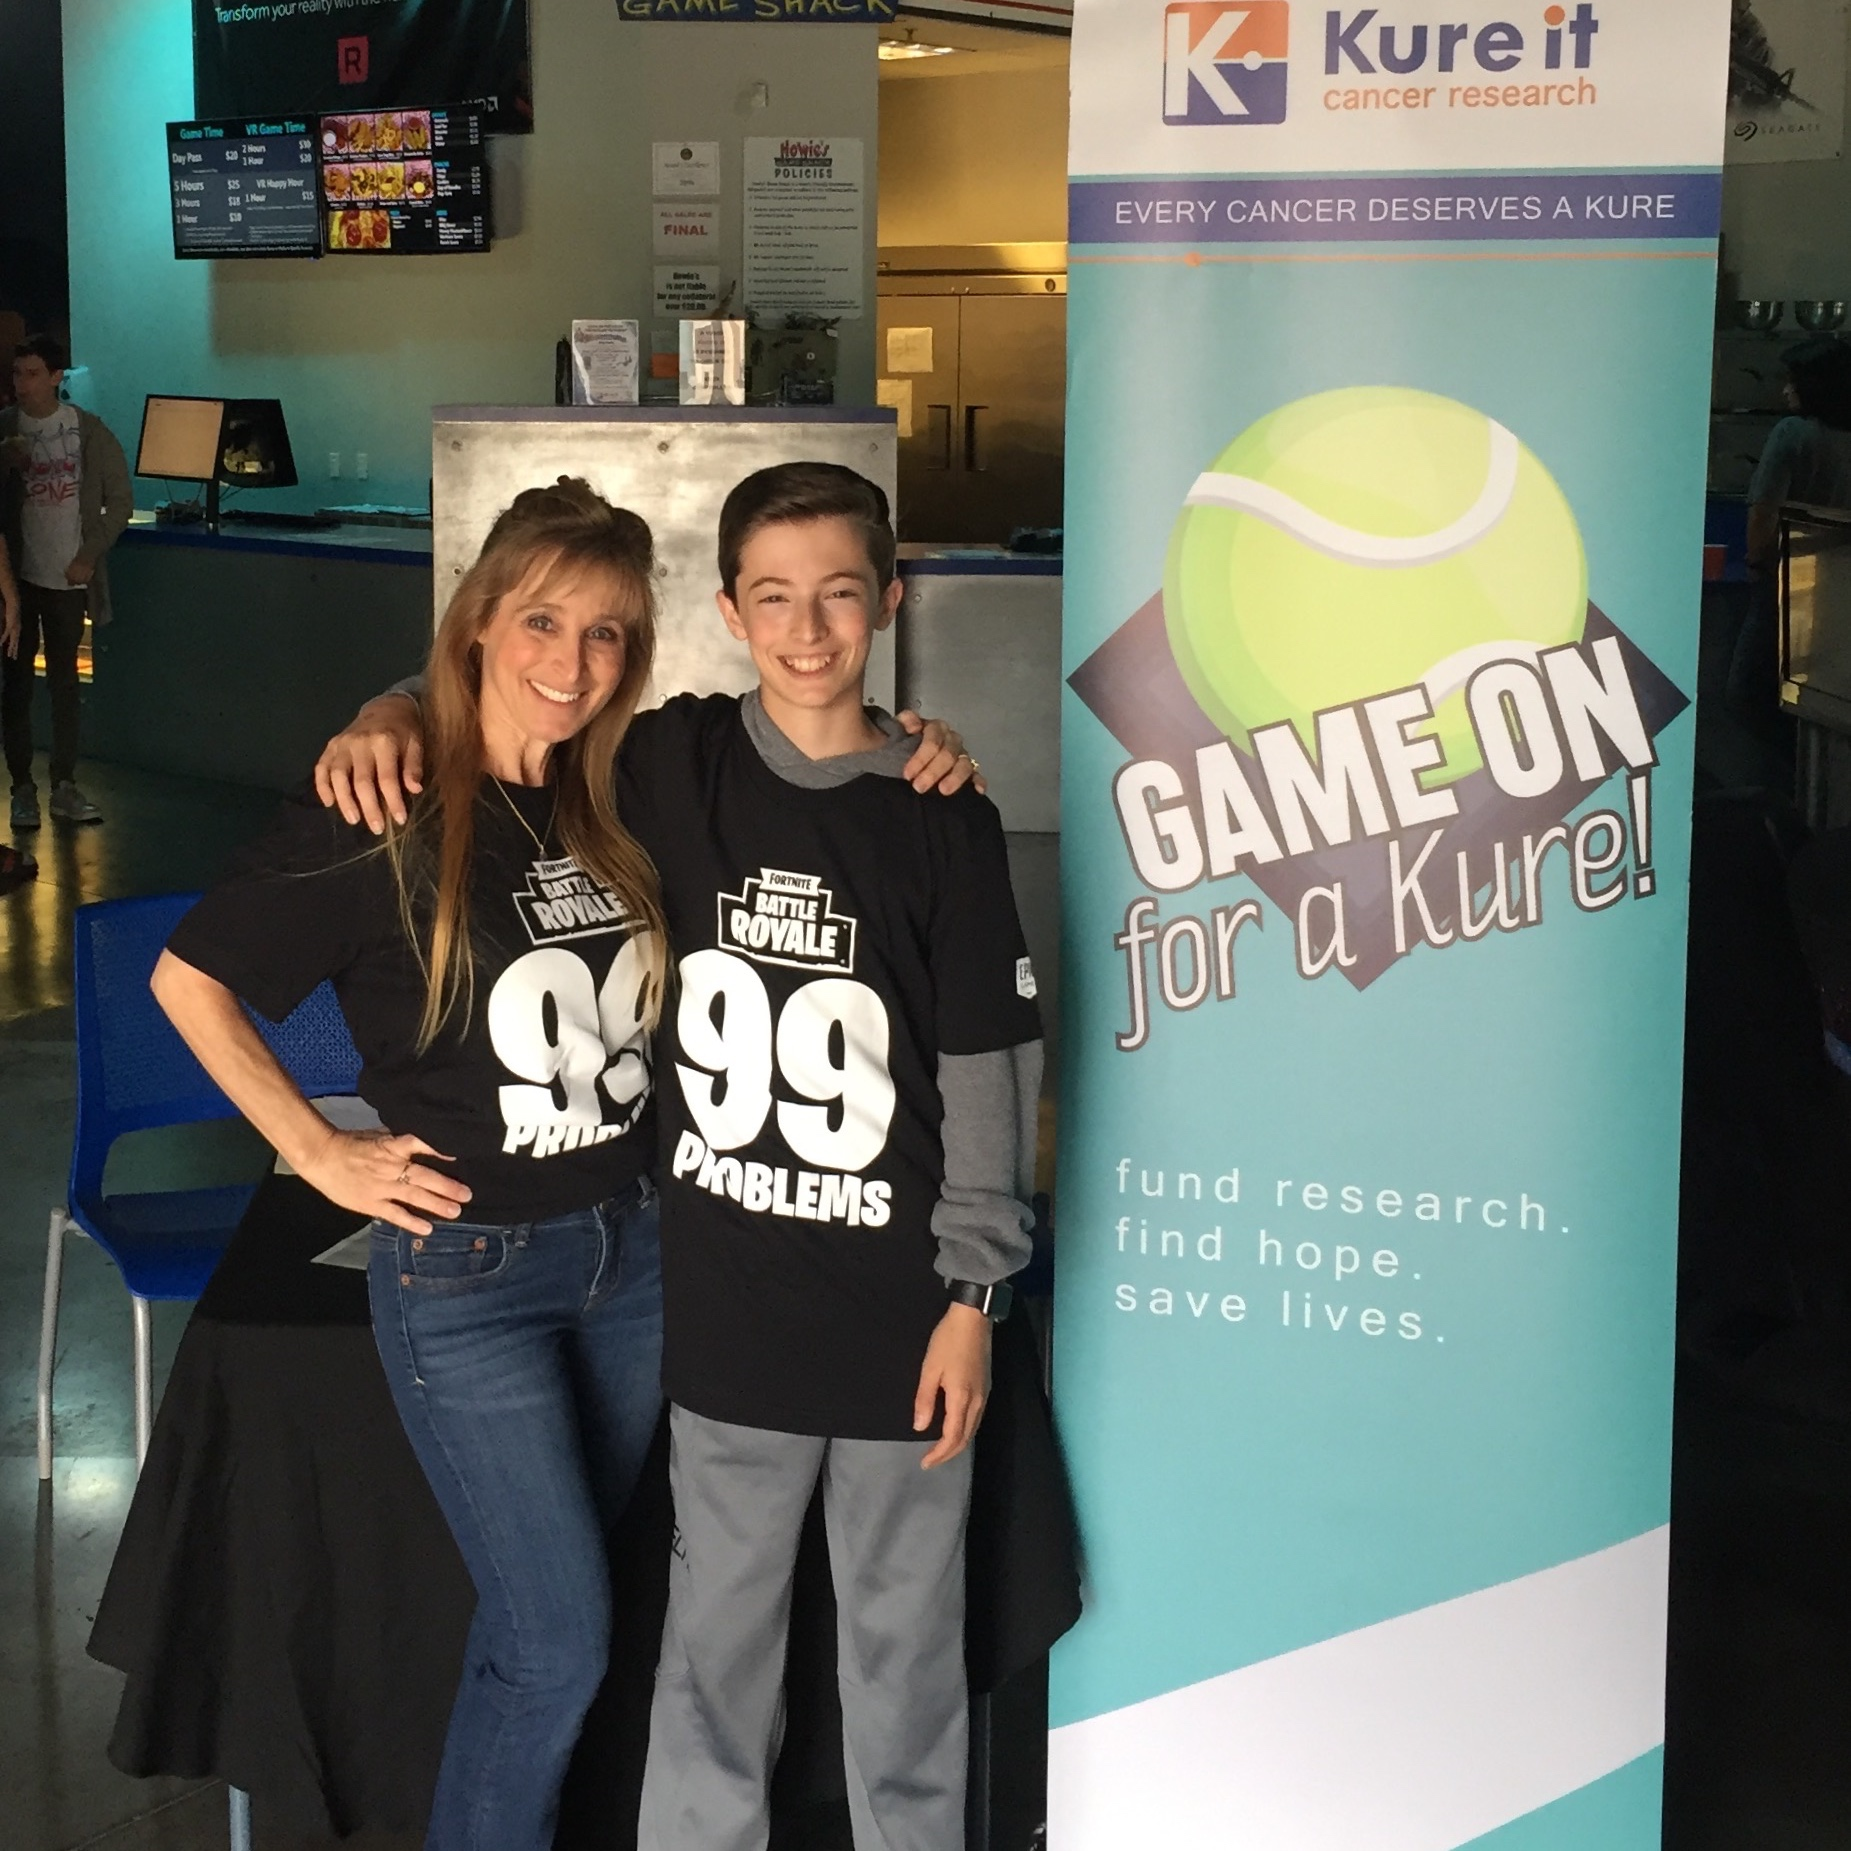 Ryan's Bloch's first gaming tournament raised over $24,000 for cancer research in honor of his grandmother Aileen Sherman